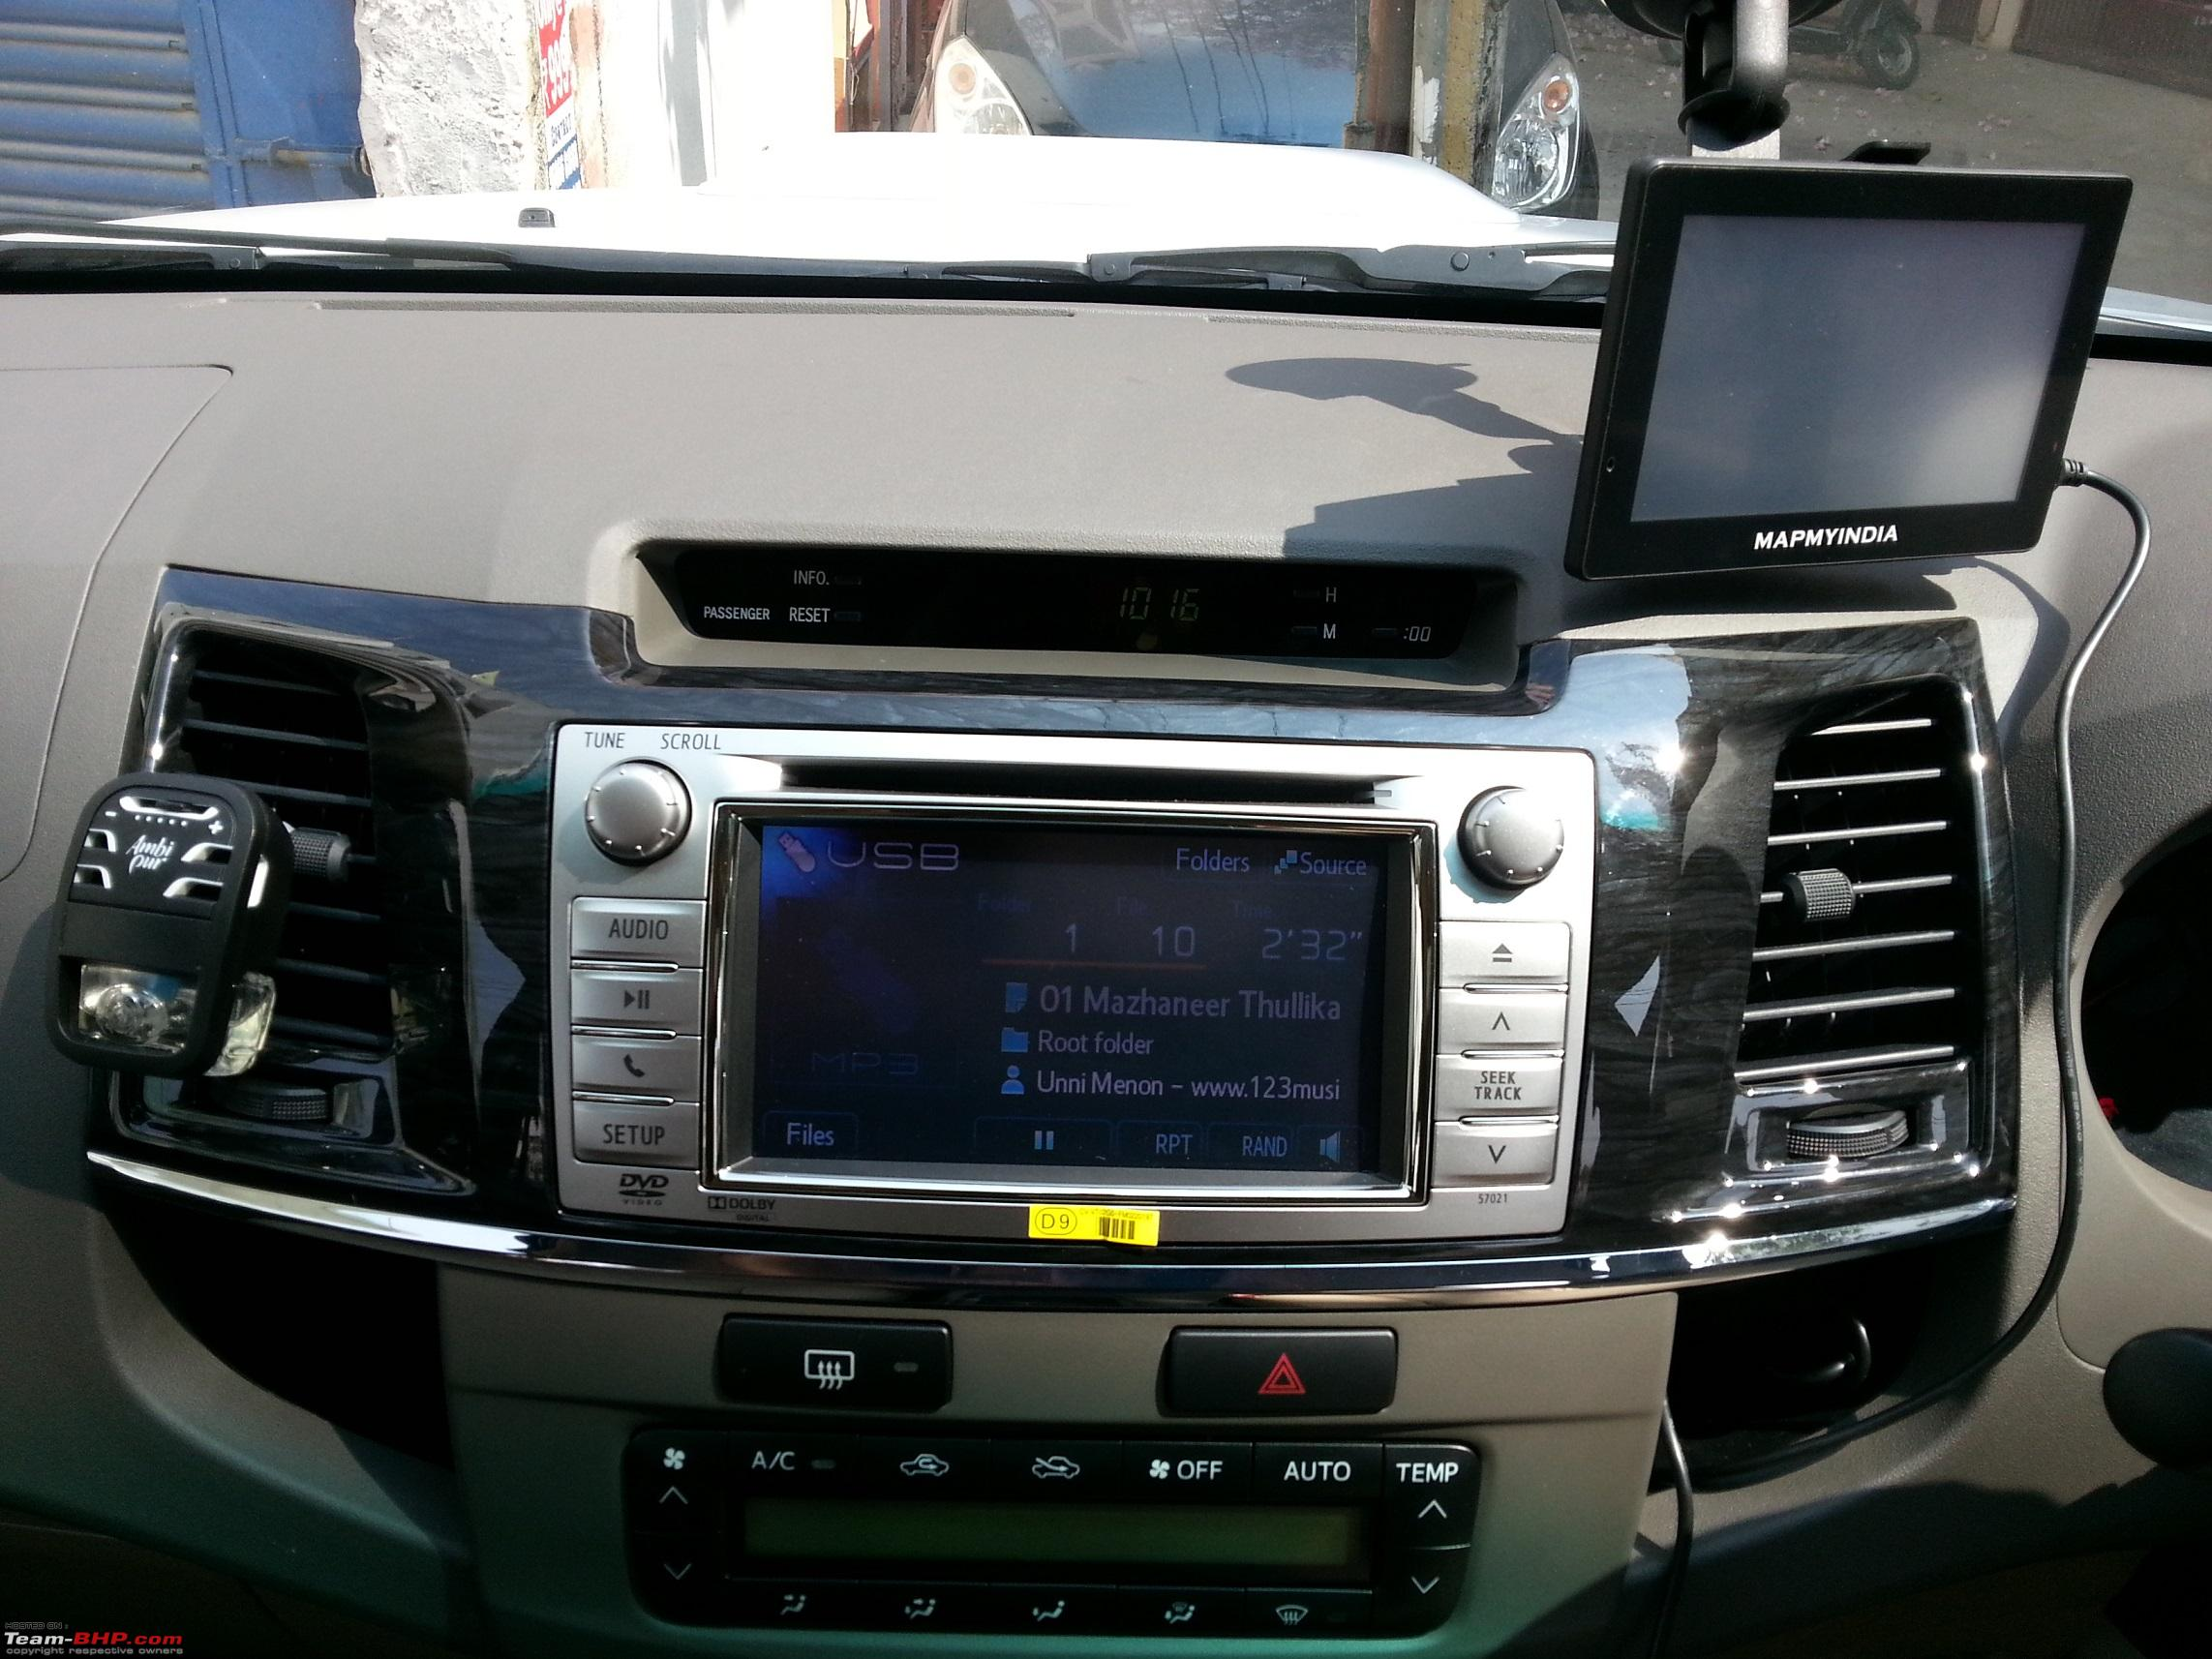 Tata Nano 2015 Interior 2018 2019 New Car Reviews By Wittsendcandy Toyota Fortuner Fuse Box Location Kl 31 E X00x 2013 The World Is Mine